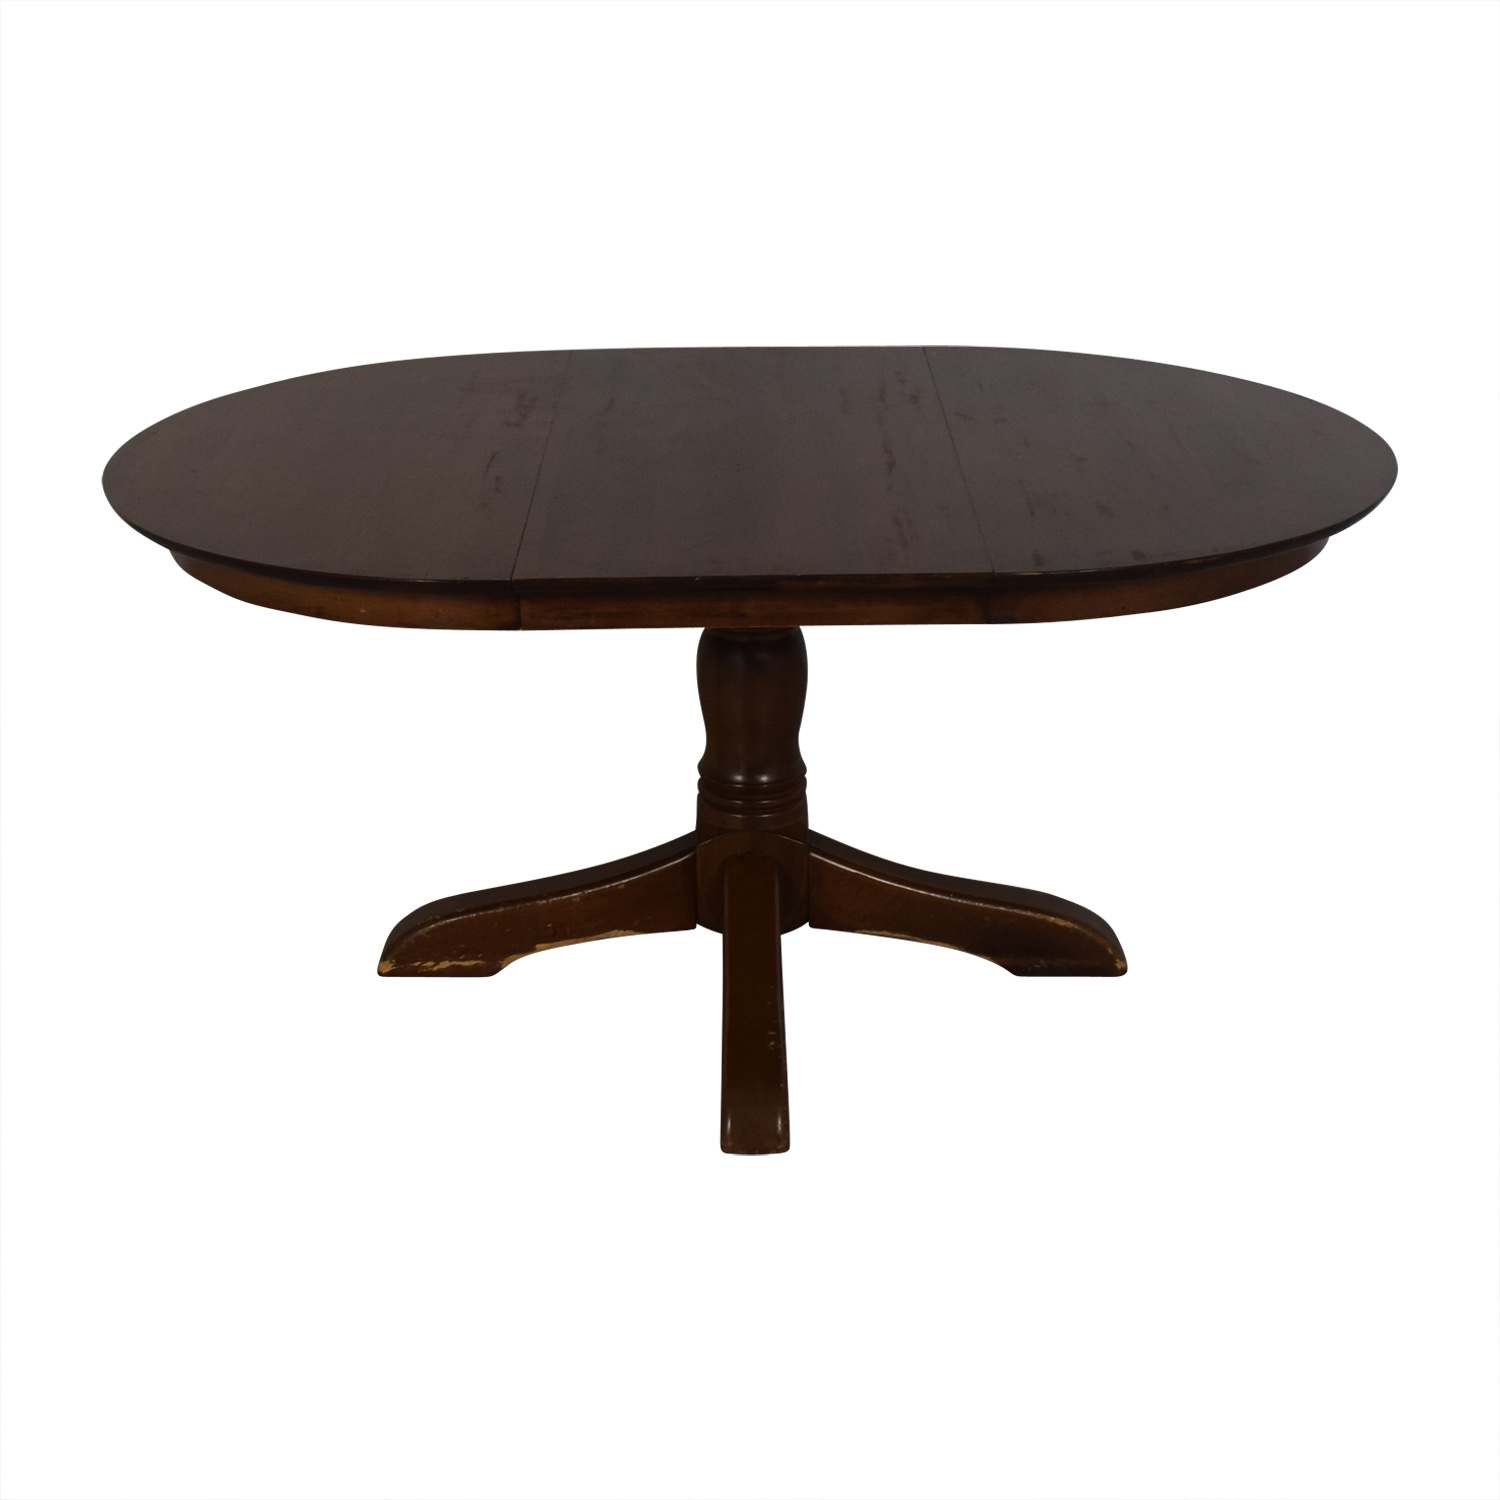 Pottery Barn Pottery Barn Extendable Round Dining Table nyc